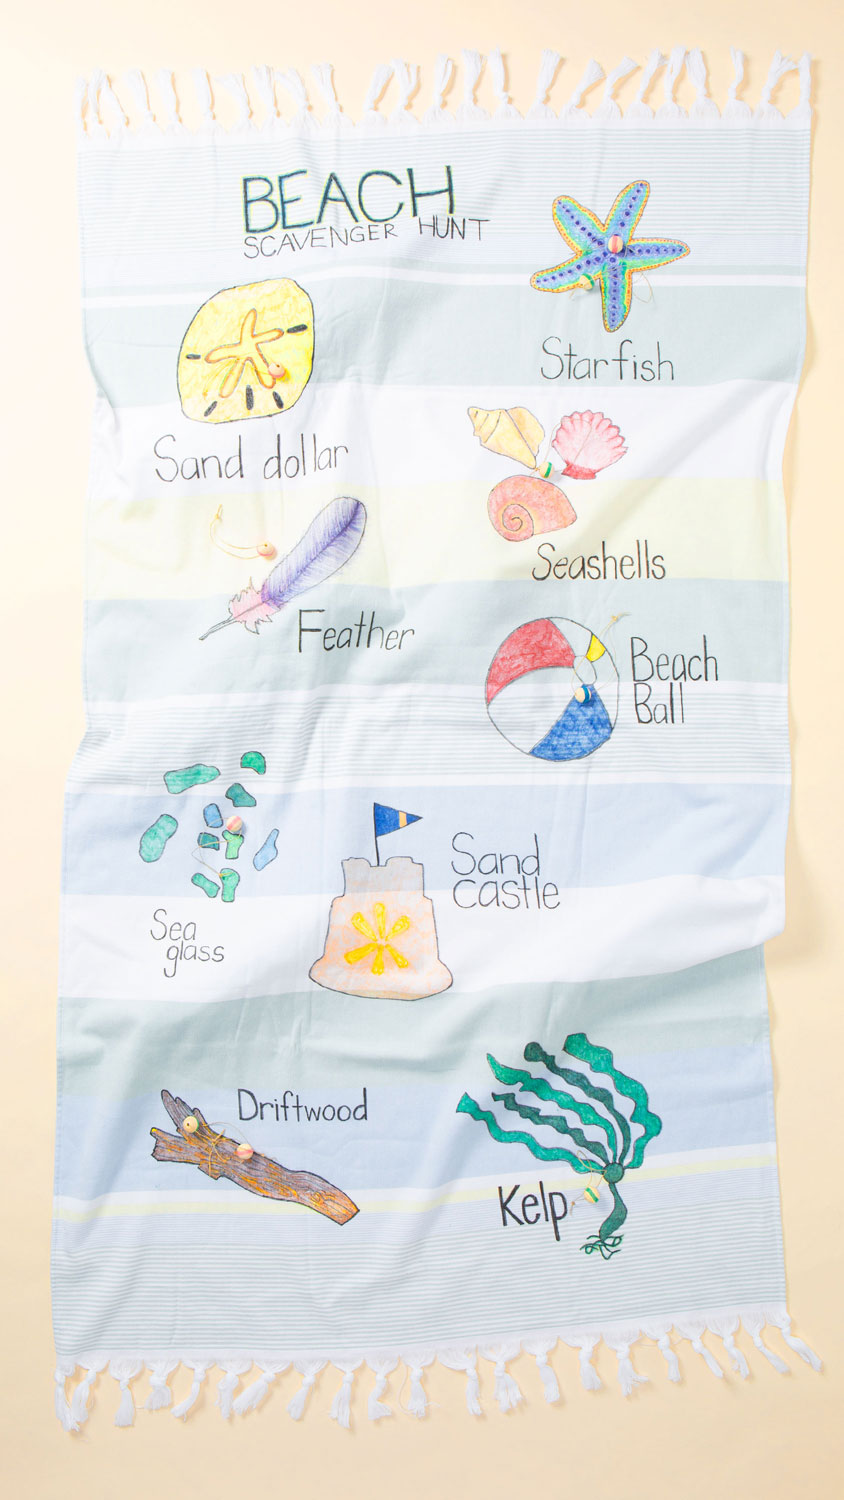 full view of beach towel with markers